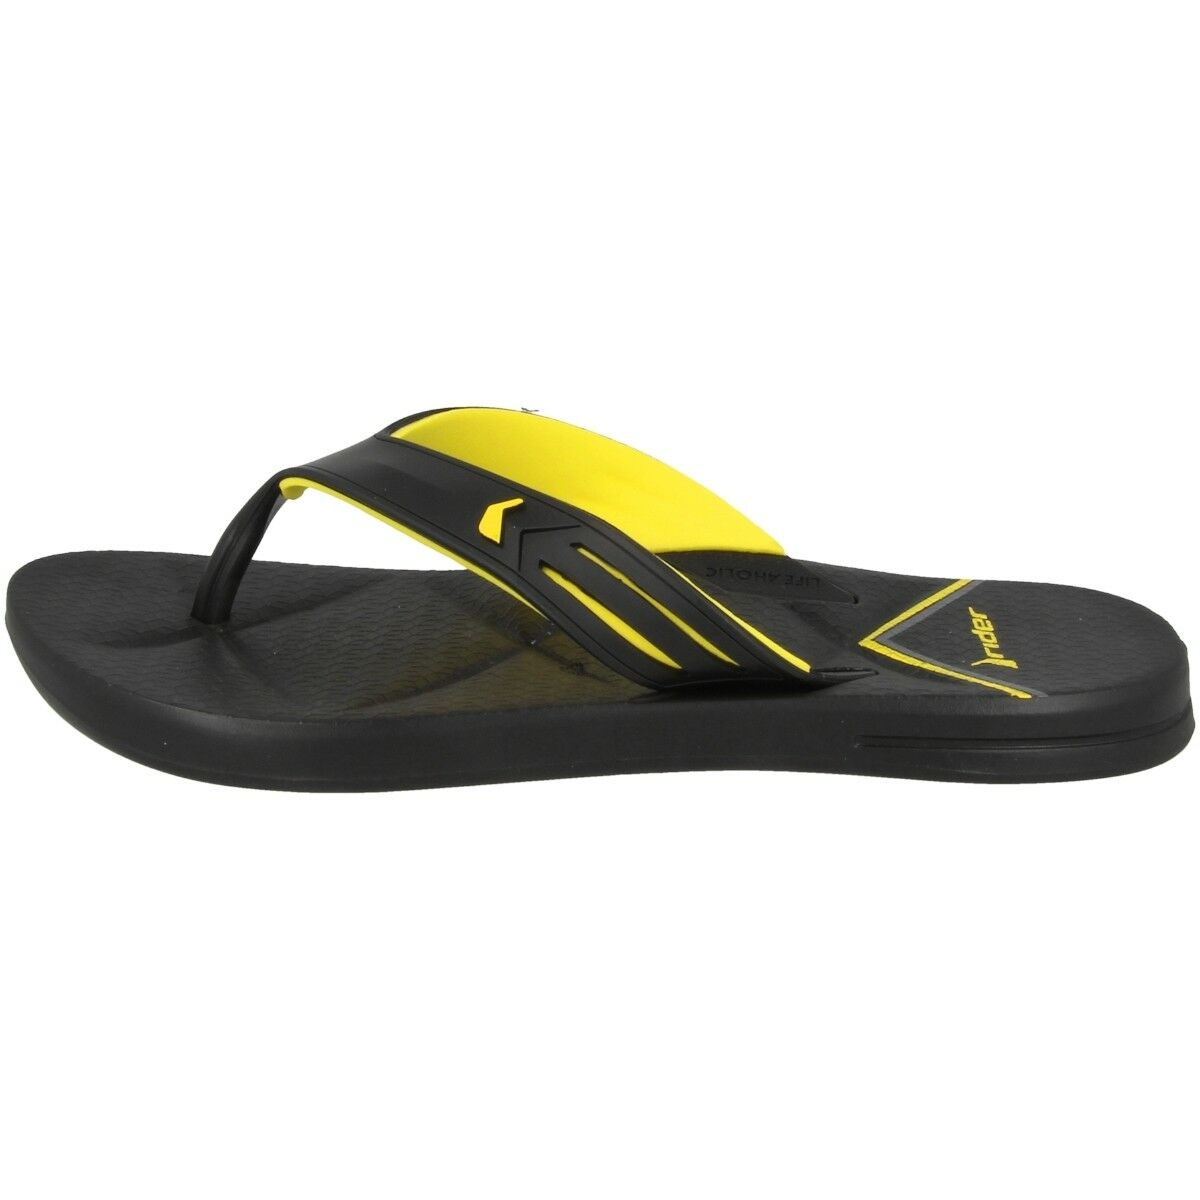 Rider Easy Thong Ad push-toe Sandals Bath Slippers Black Yellow 82026-8627